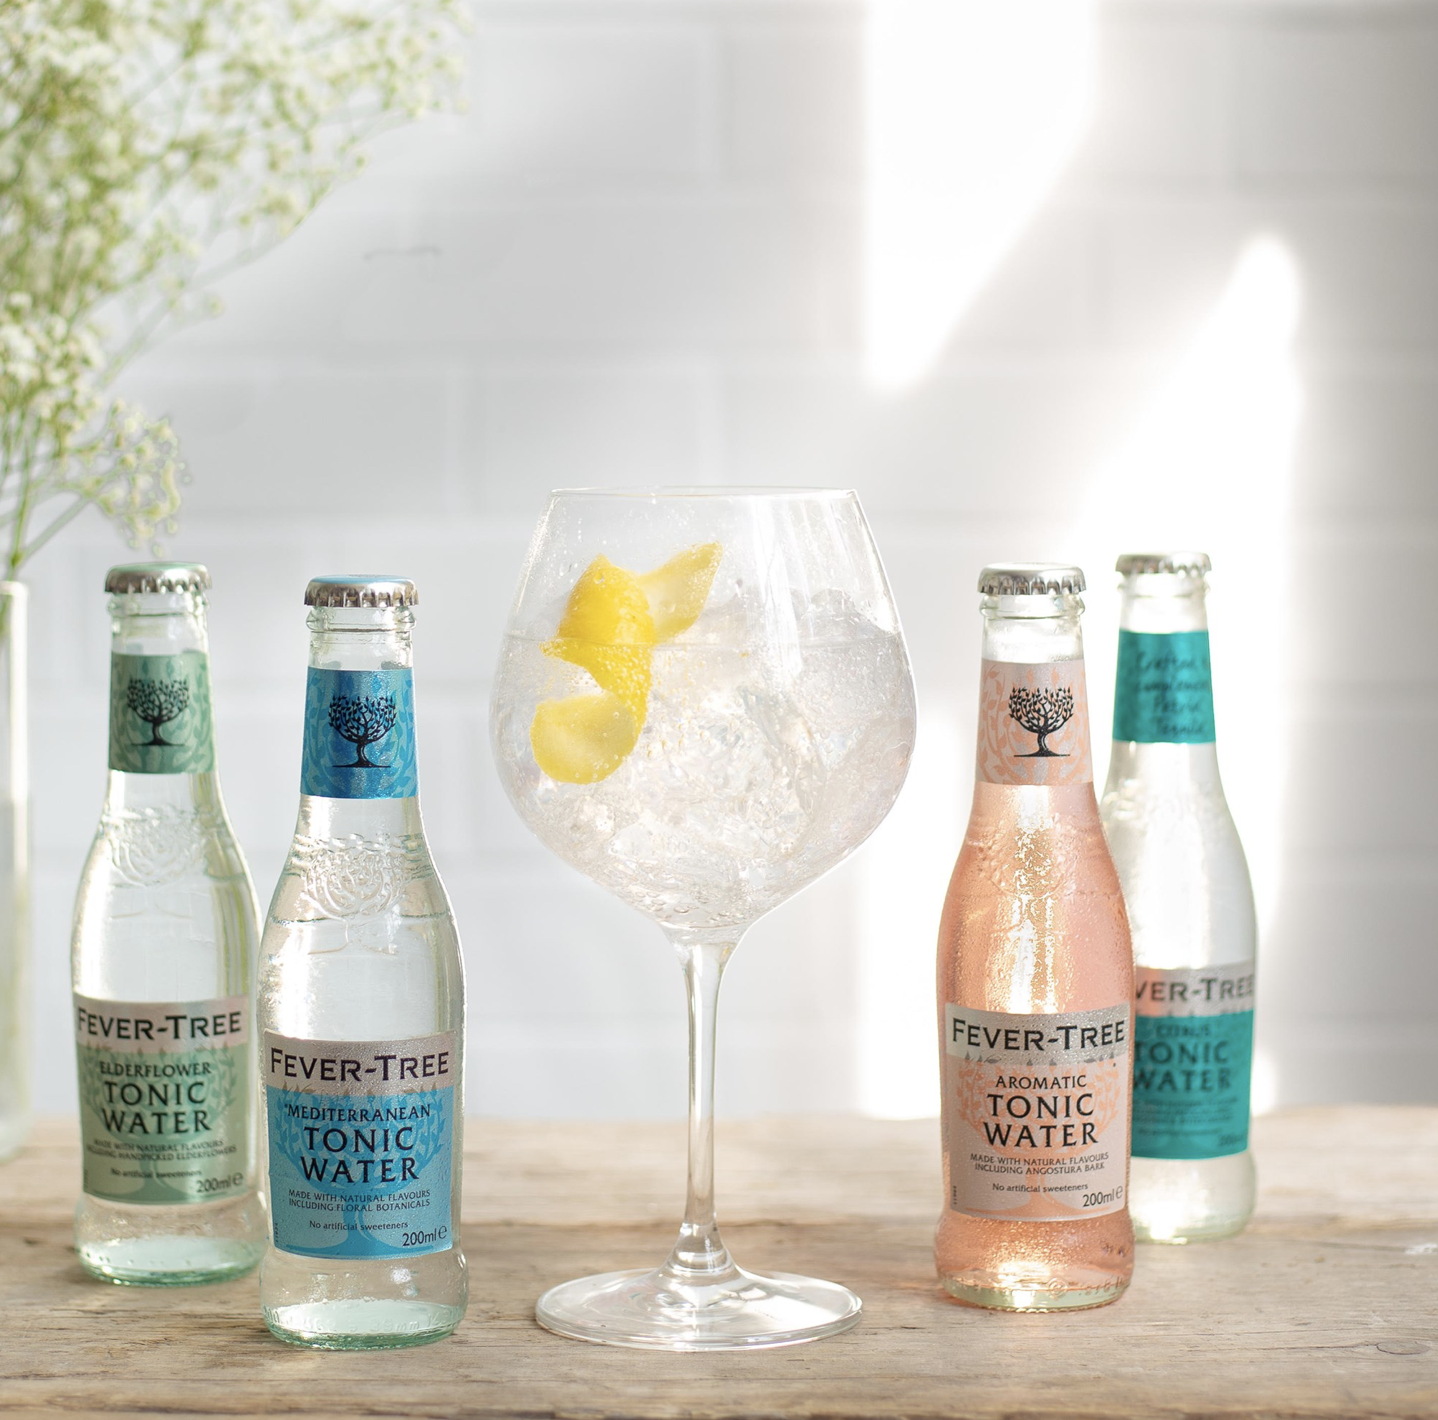 Fever Tree Bottles